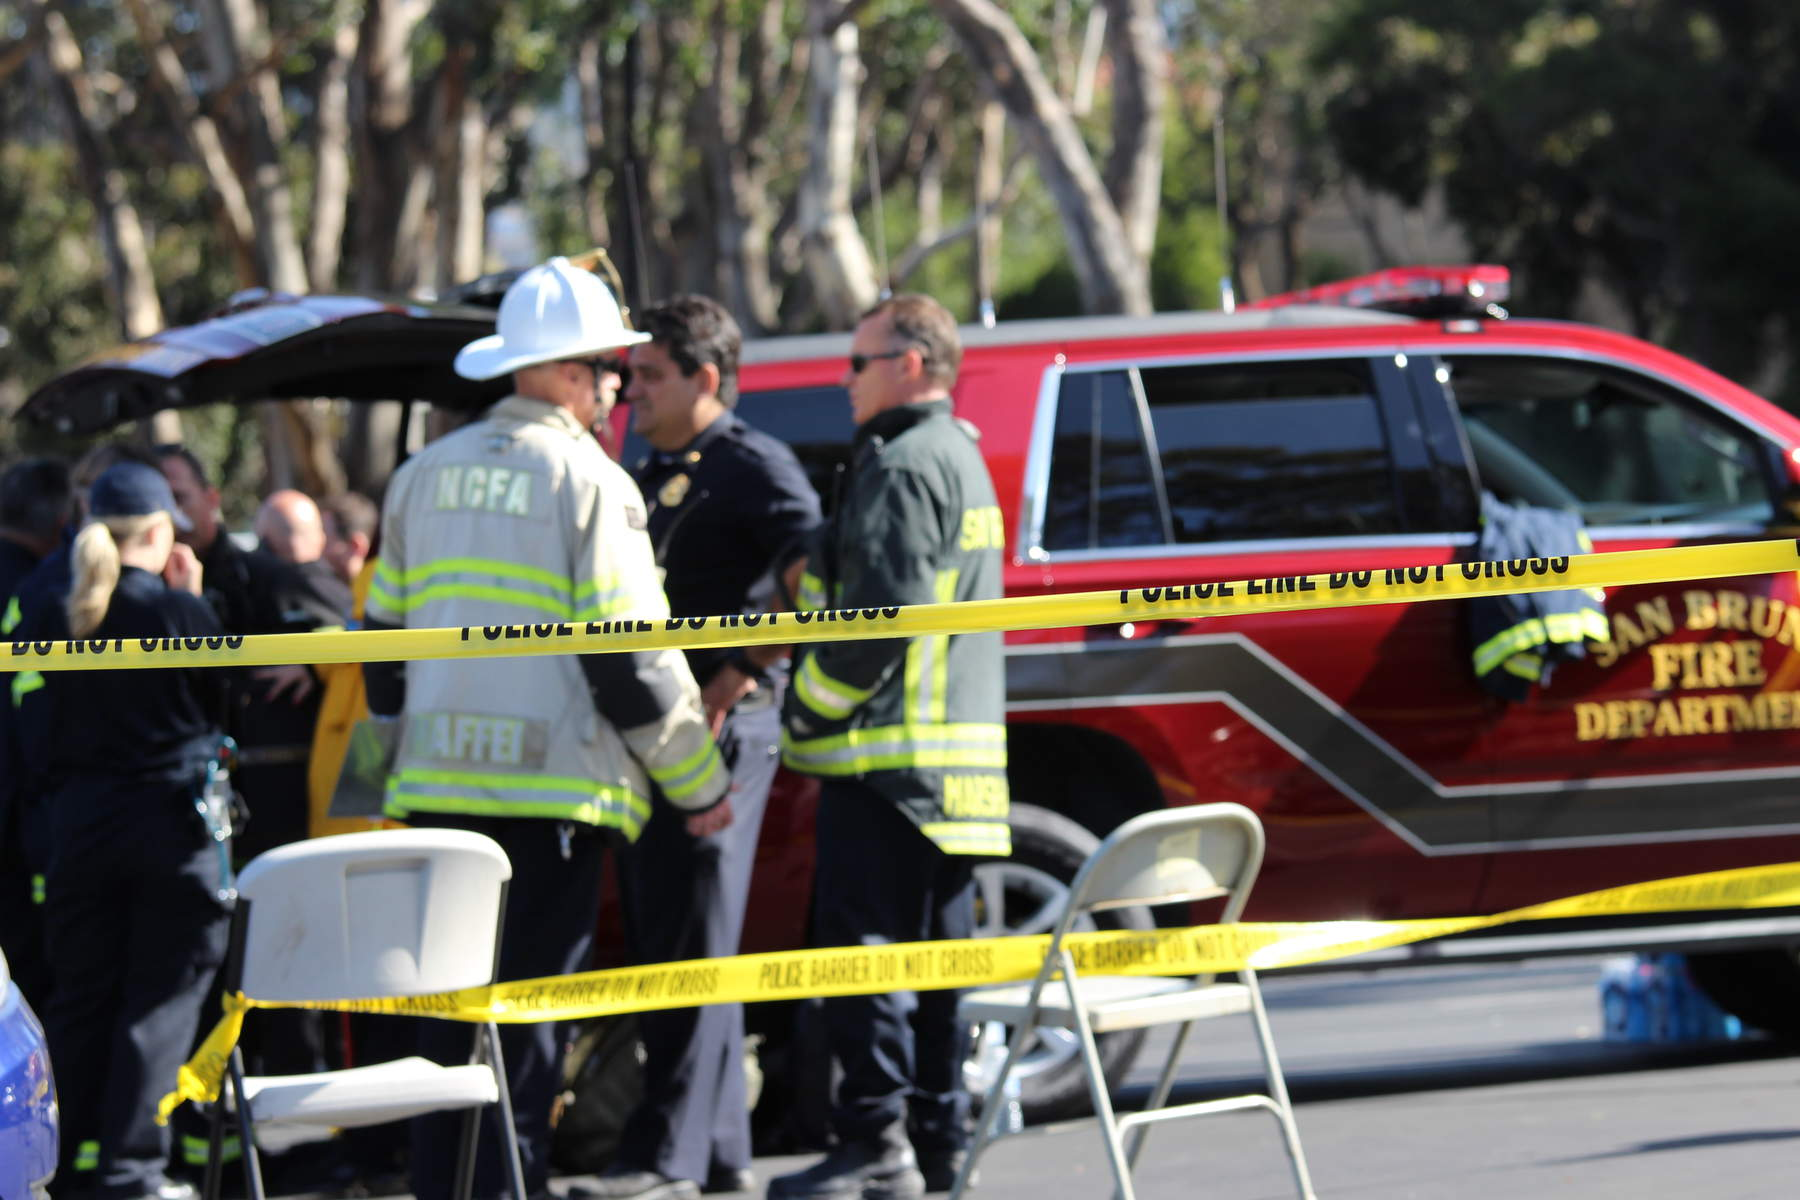 Law enforcement and fire officials near the scene of the shooting at YouTube's headquarters on Tuesday,  April 3, 2018. (Anthony Miller/Peninsula Press)